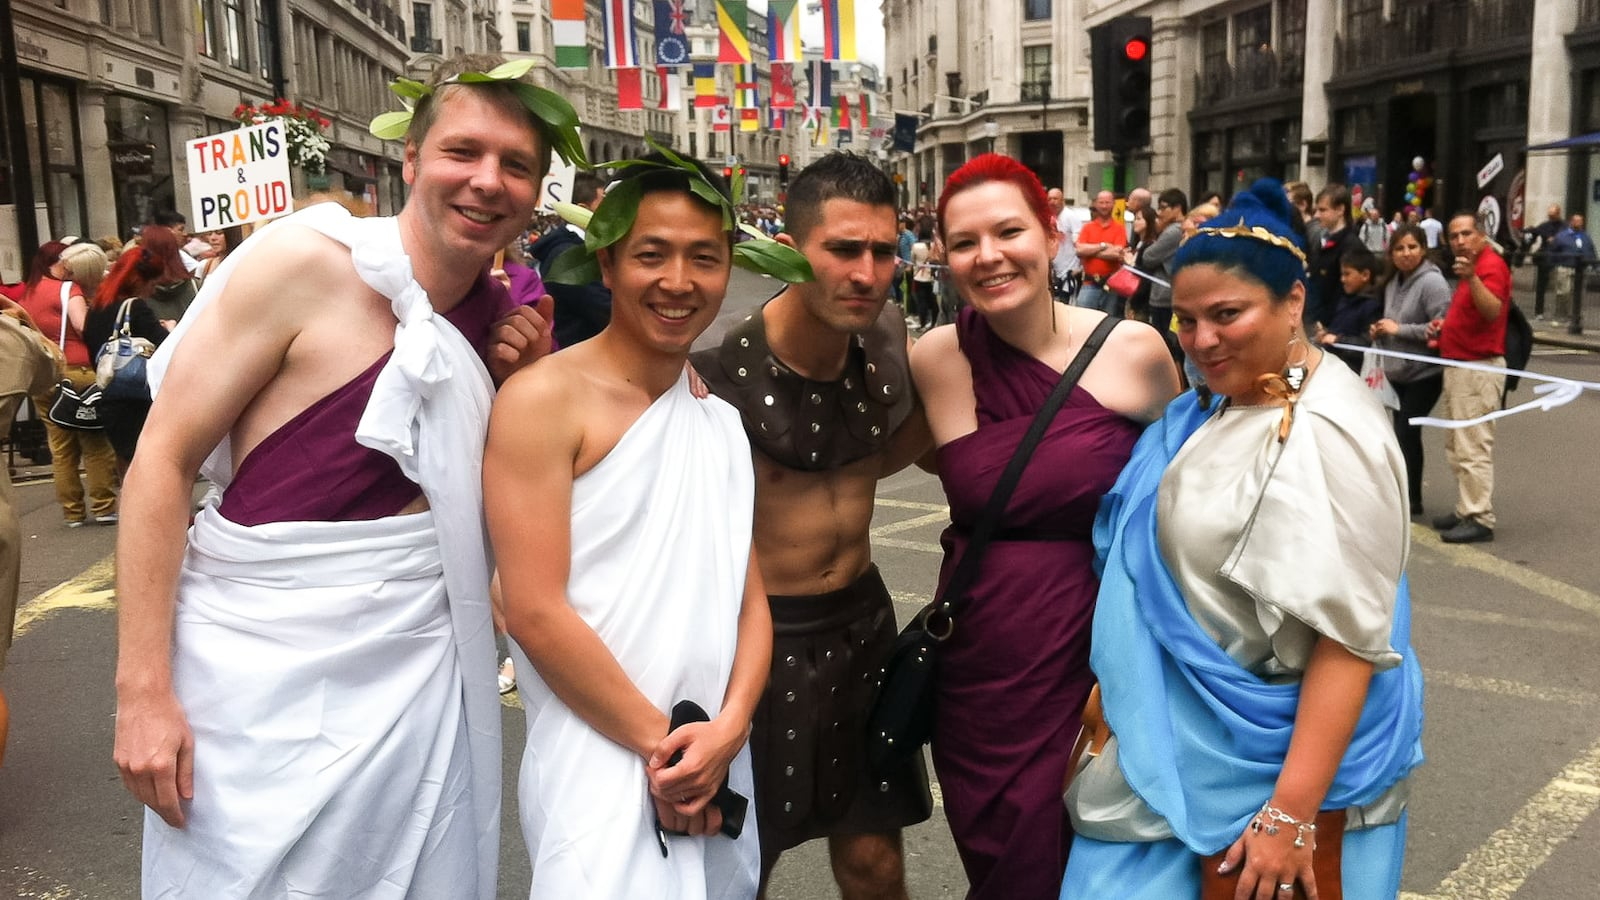 Roman and Ancient Greek Pride outfits